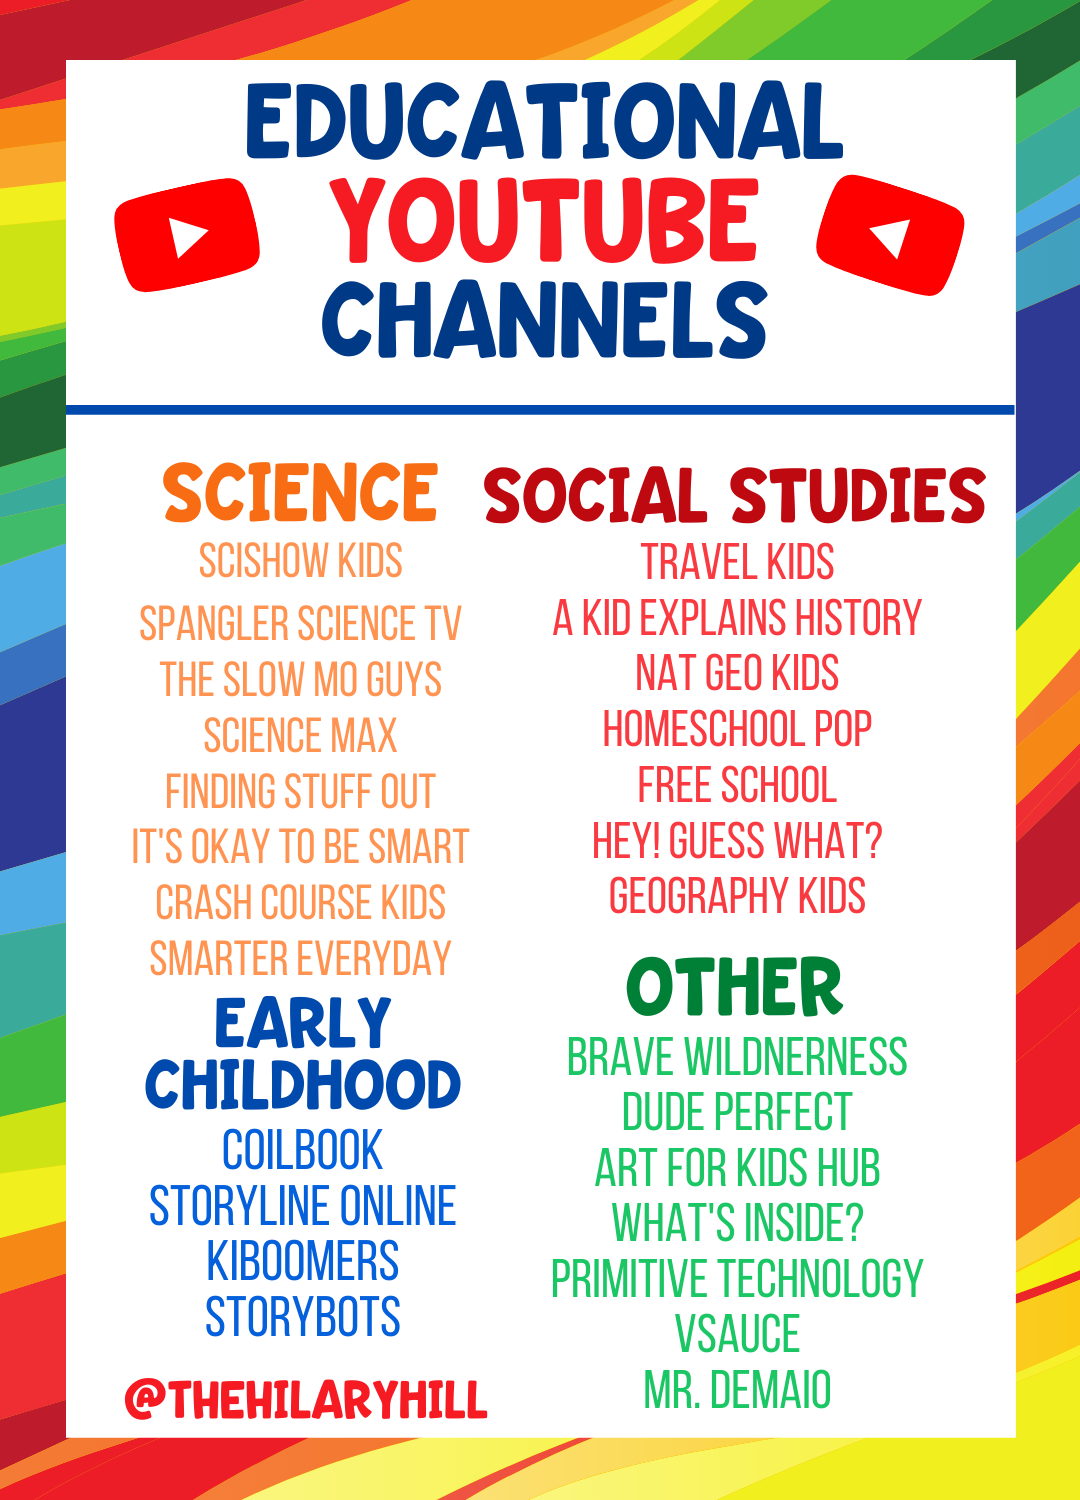 Educational YouTube Channels for Kids